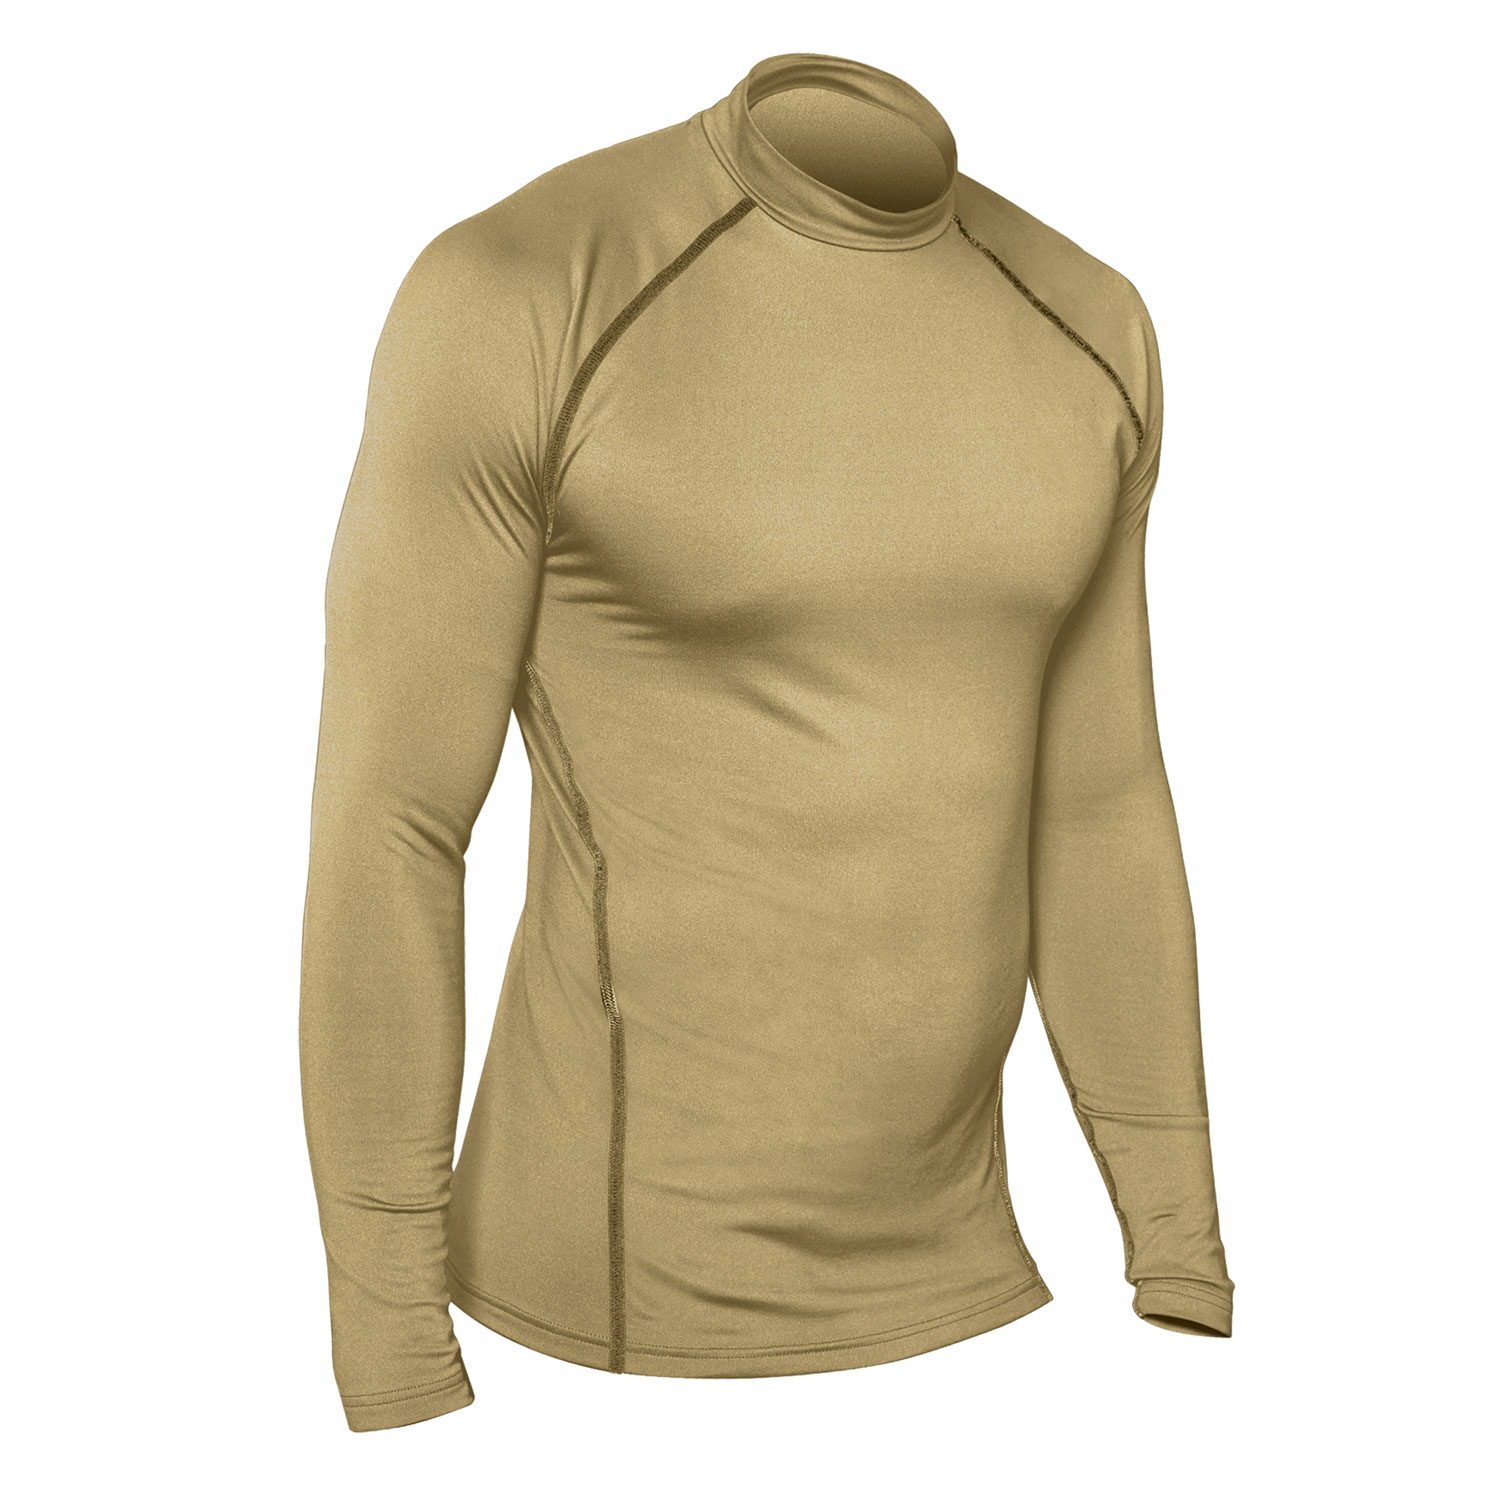 3b83a42593a3 Champion Tactical Competitor Double Dry Long Sleeve Mock Tee